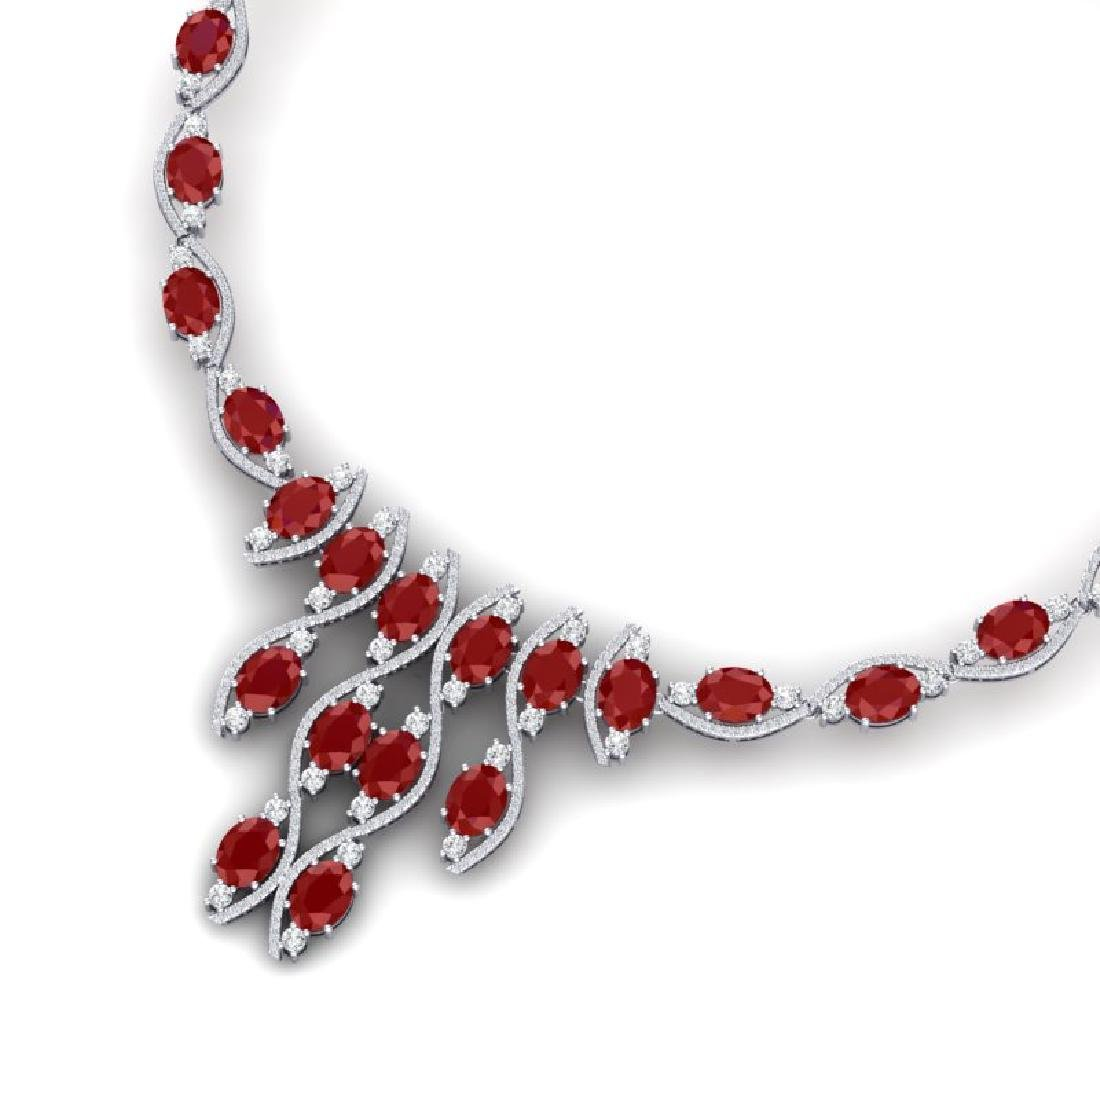 65.93 CTW Royalty Ruby & VS Diamond Necklace 18K White